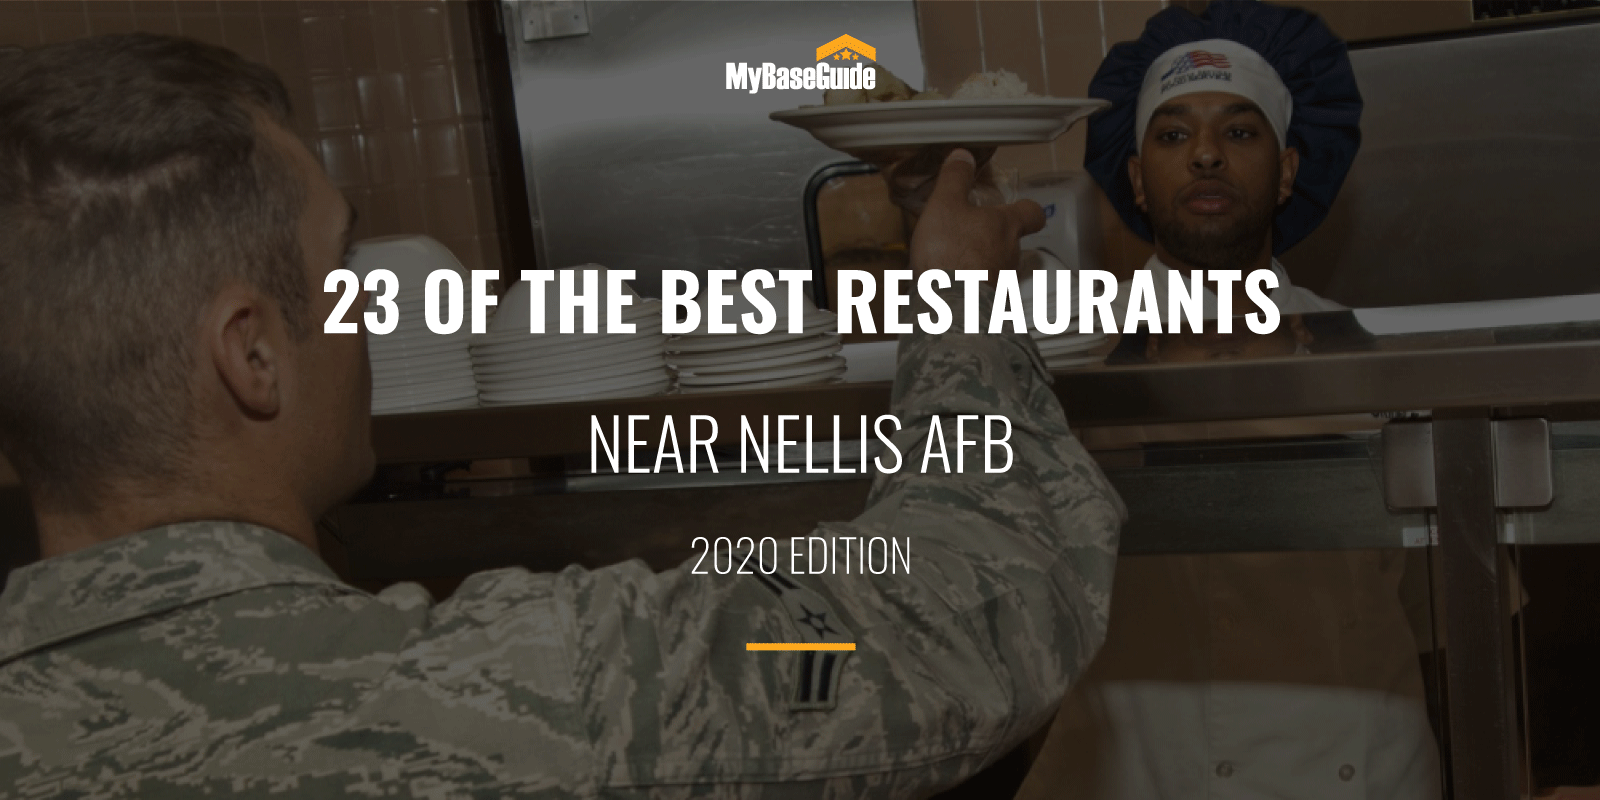 23 Of the Best Restaurants Near Nellis AFB